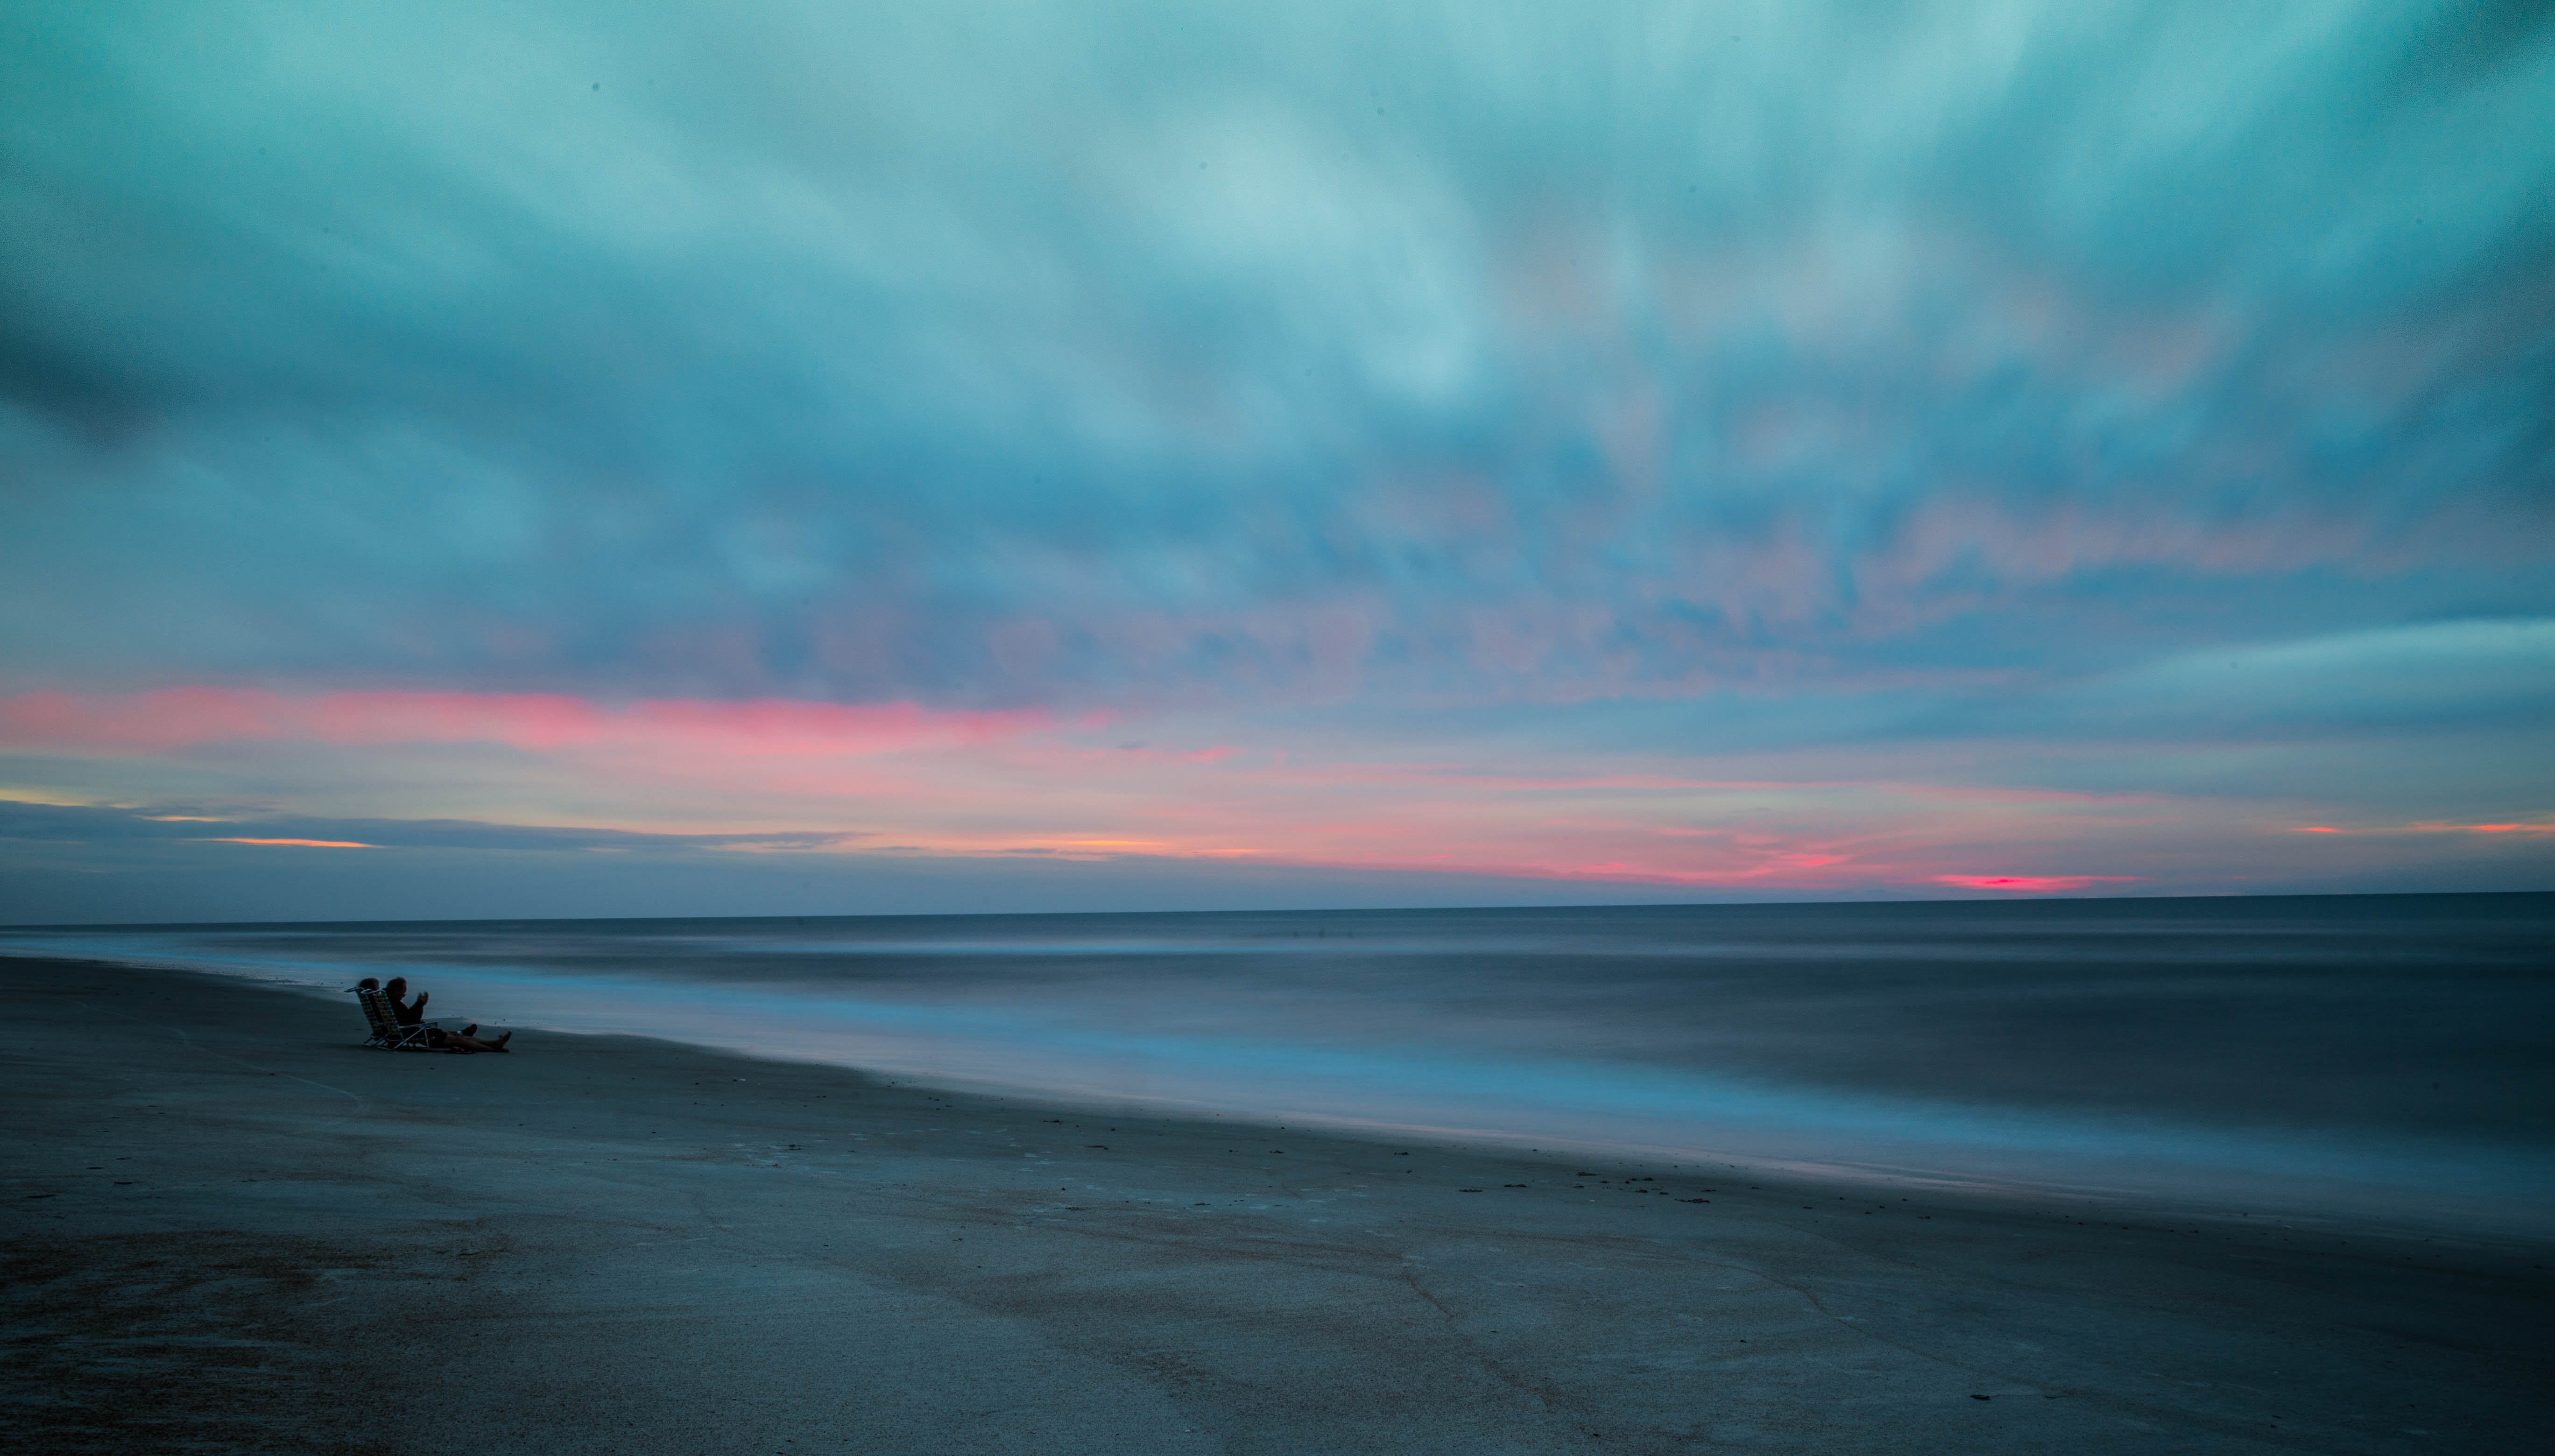 People on the sandy beach after the sunset at Saint Augustine Beach